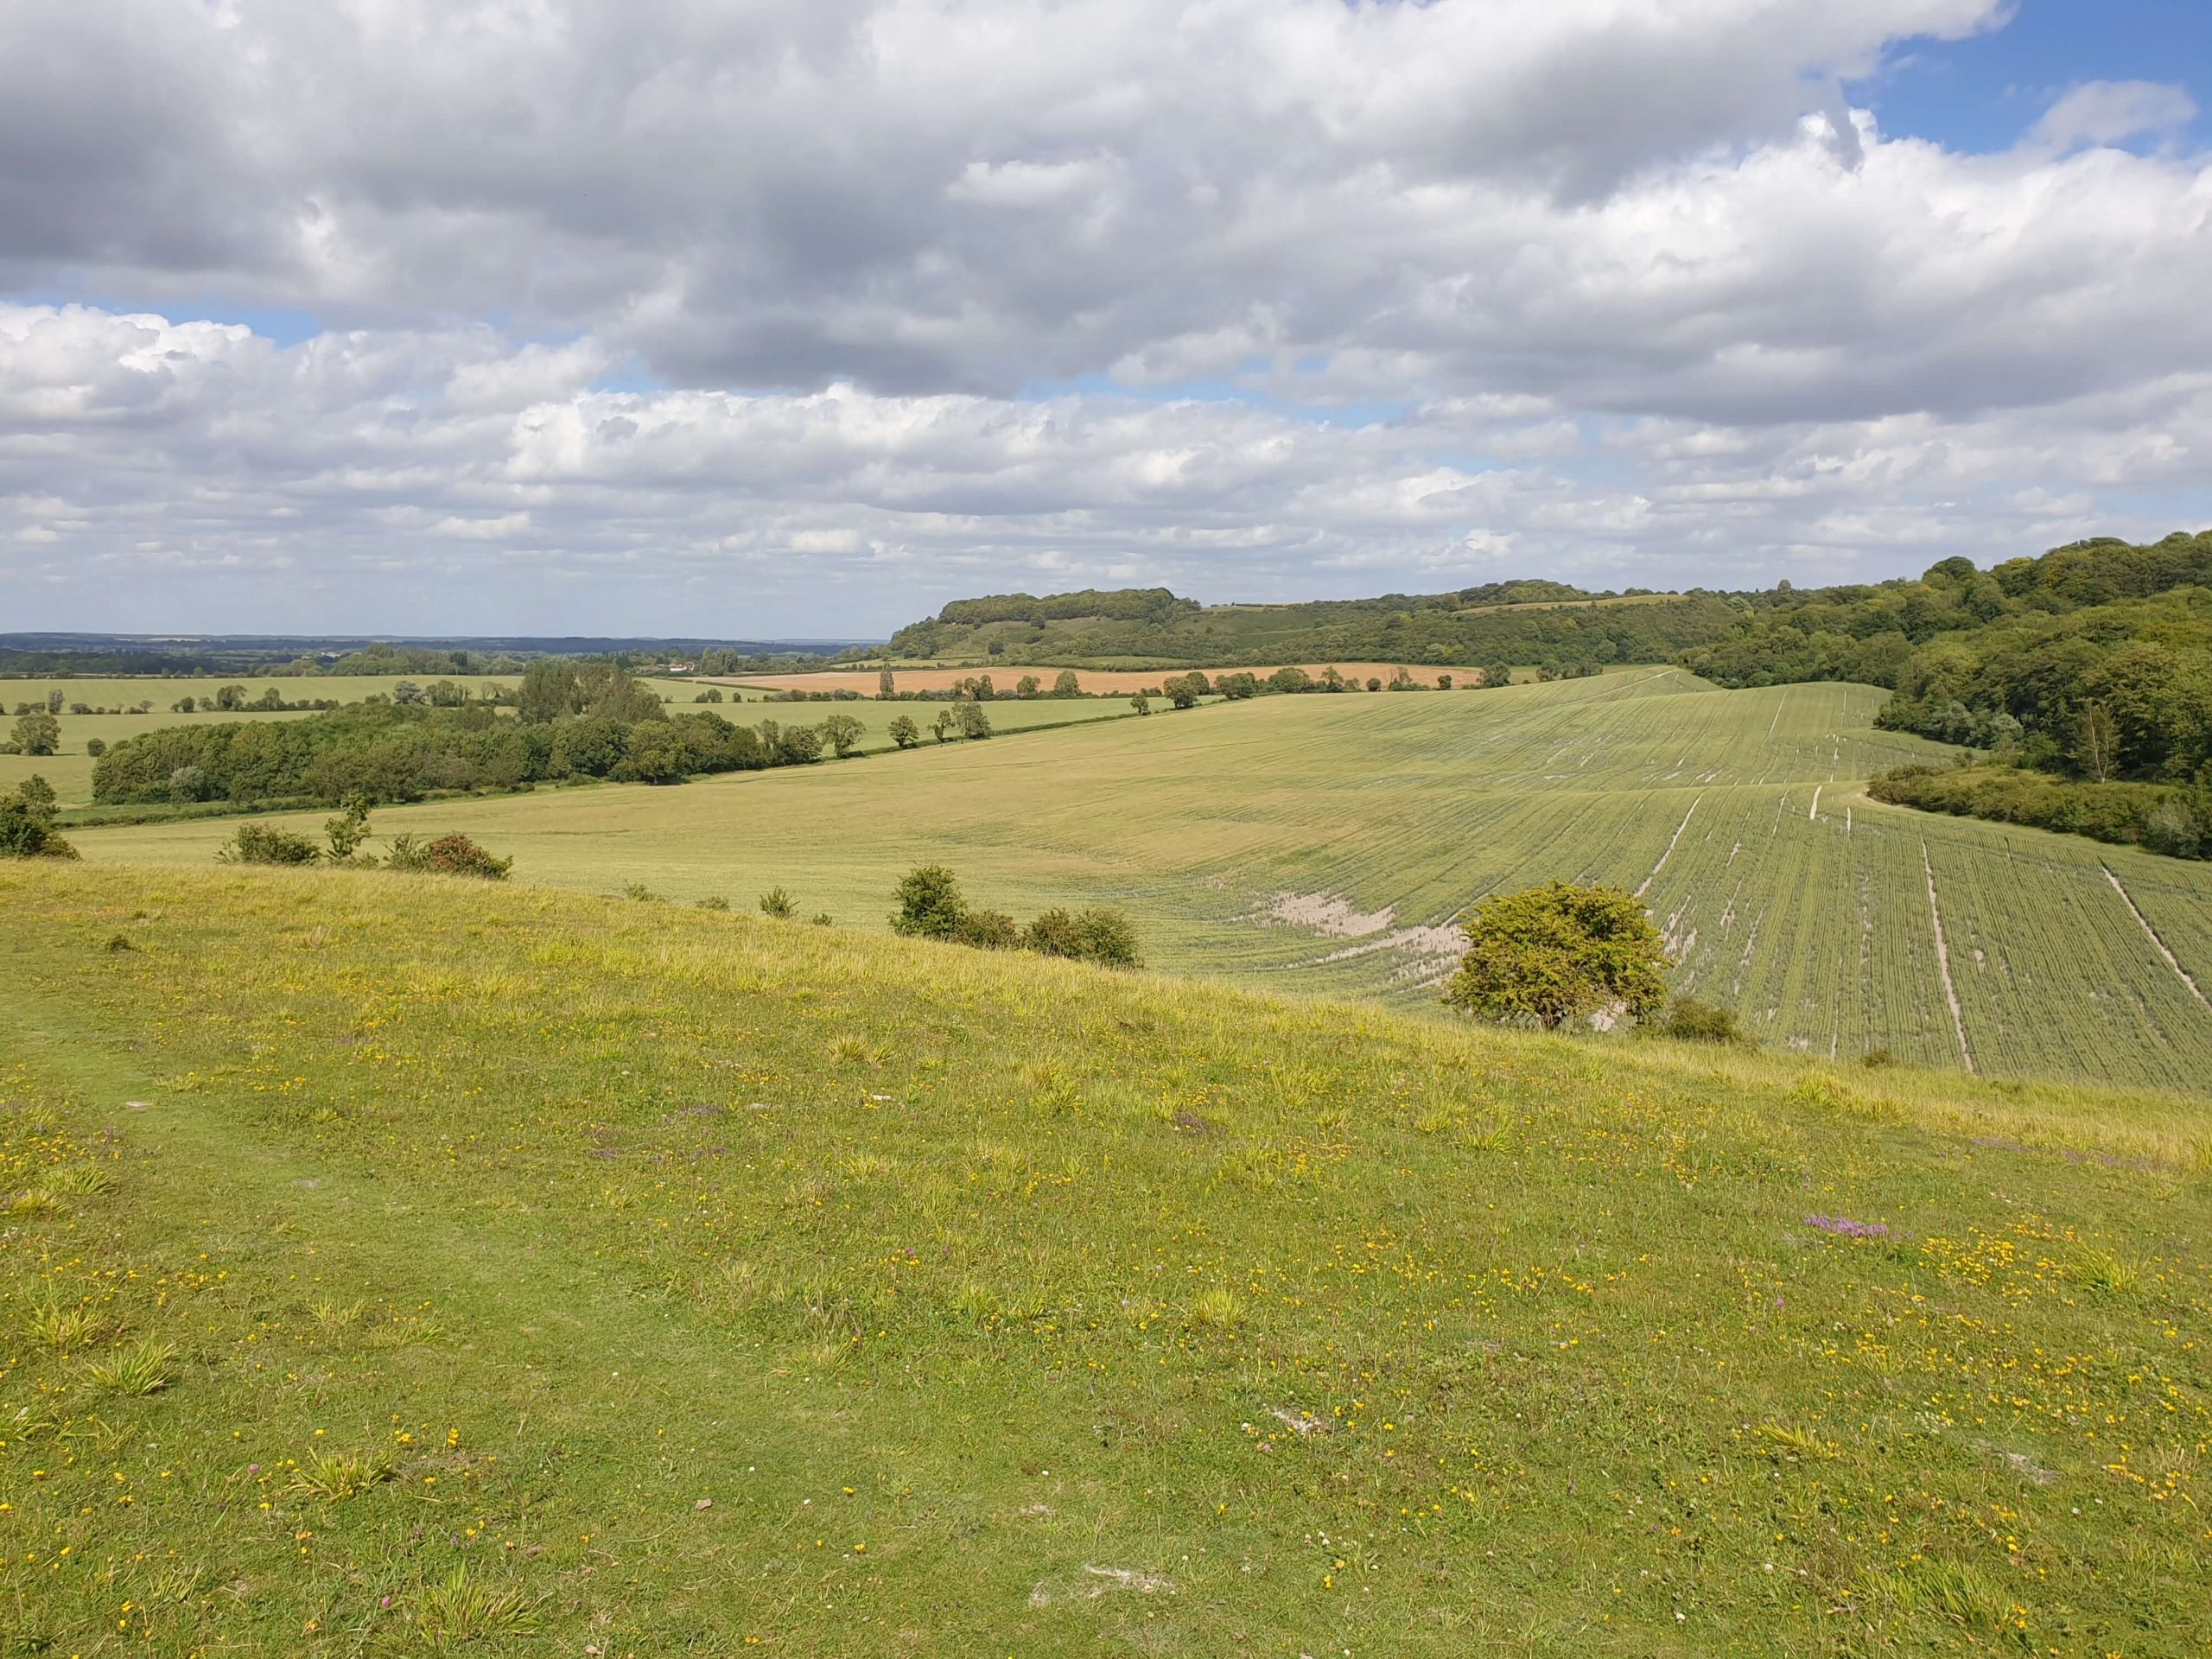 Icknield Way, green hills, countryside, UK Walking holiday top ten tips for a successful trip